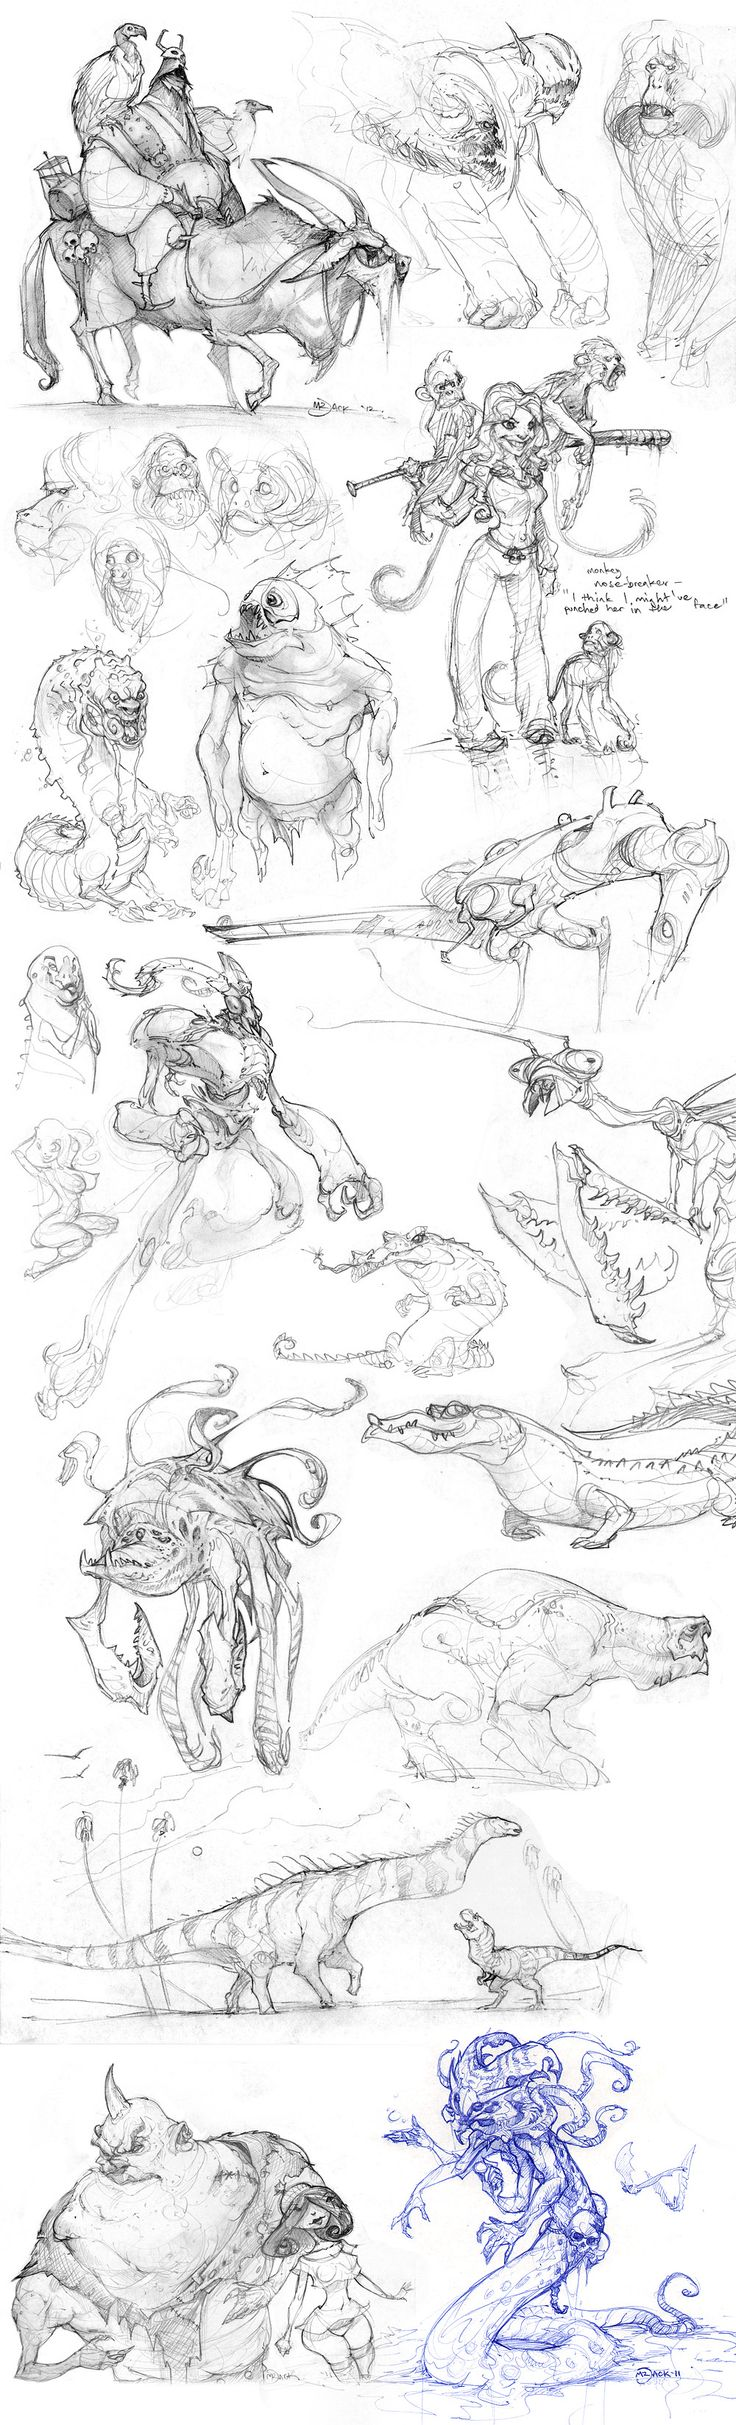 Another Pile by *Mr--Jack on deviantART ✤ || CHARACTER DESIGN REFERENCES | キャラクターデザイン • Find more at https://www.facebook.com/CharacterDesignReferences if you're looking for: #lineart #art #character #design #illustration #expressions #best #animation #drawing #archive #library #reference #anatomy #traditional #sketch #development #artist #pose #settei #gestures #how #to #tutorial #comics #conceptart #modelsheet #cartoon || ✤